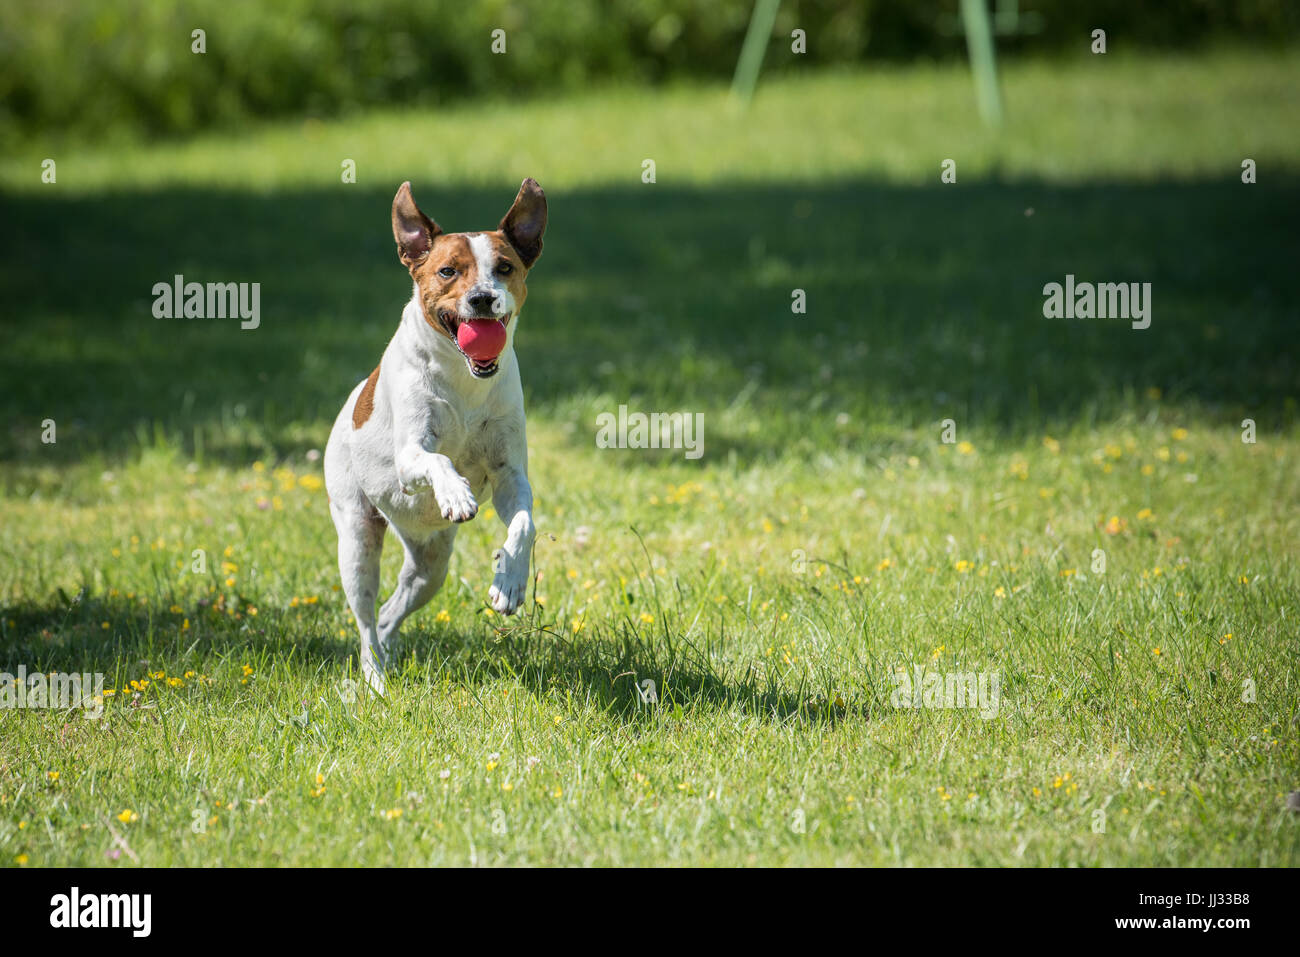 Danish Swedish Farmdog playing fetch with a ball. This breed, which originates from Denmark and southern Sweden - Stock Image